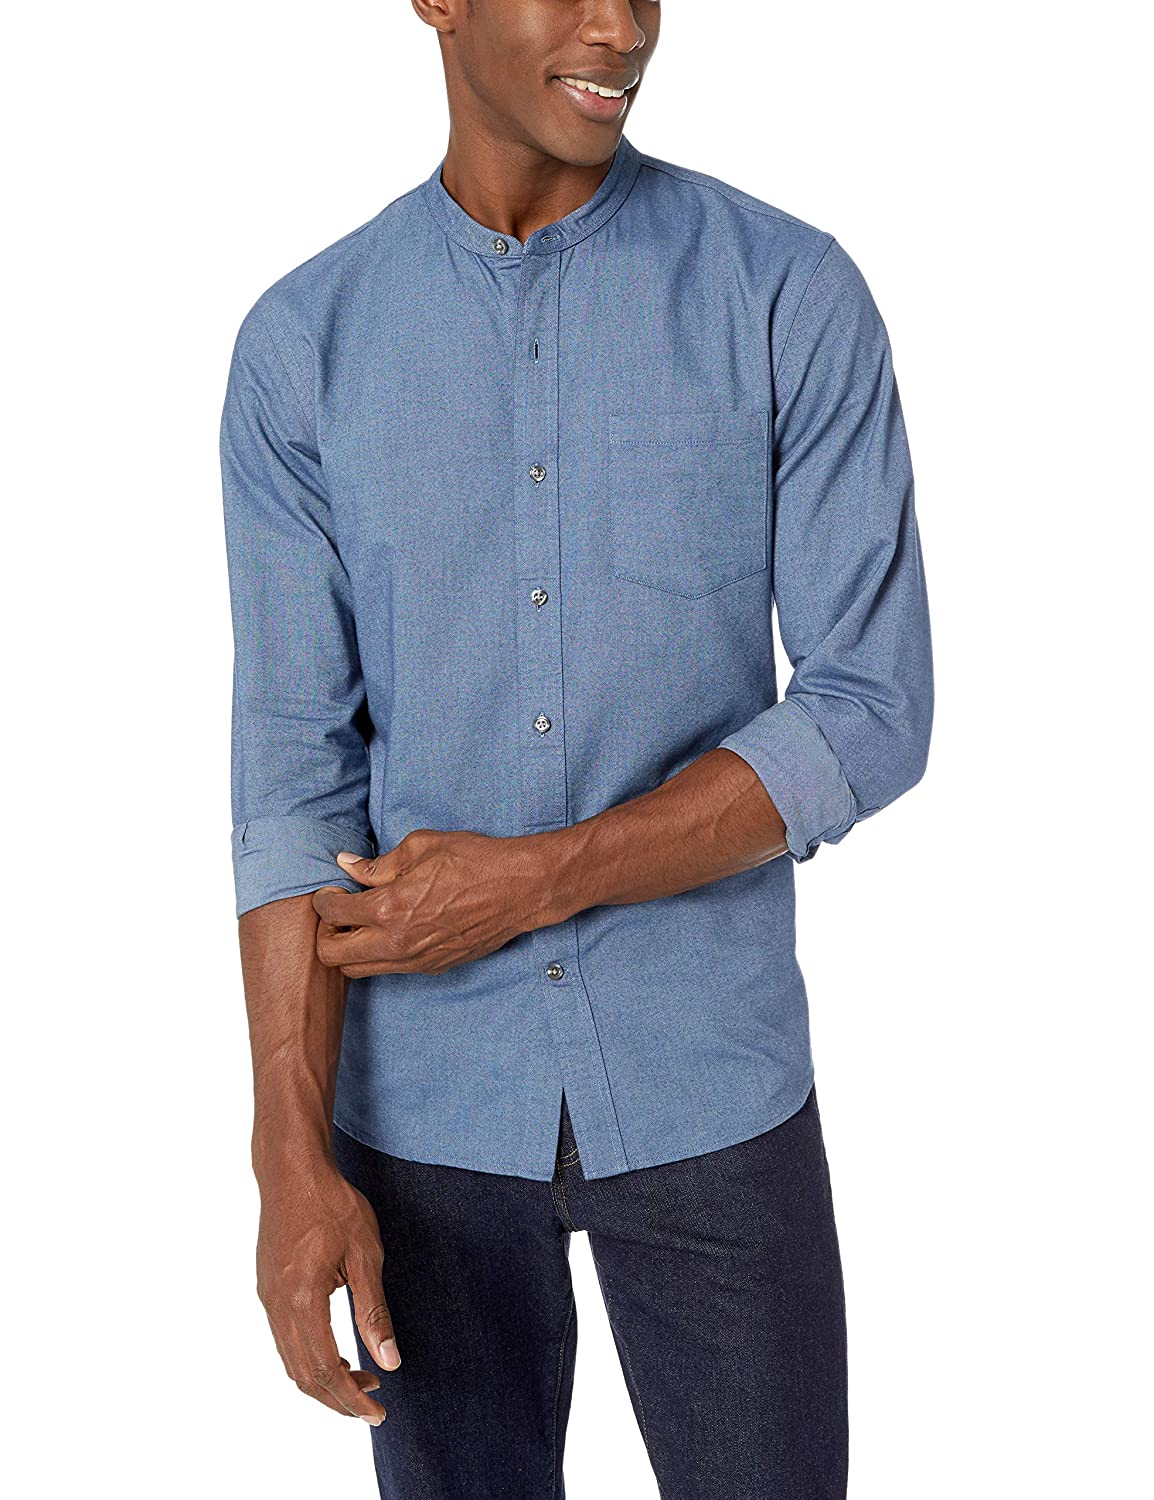 Mens Vintage Shirts – Casual, Dress, T-shirts, Polos Amazon Brand - Goodthreads Mens Standard-Fit Long-Sleeve Band-Collar Oxford Shirt $25.00 AT vintagedancer.com